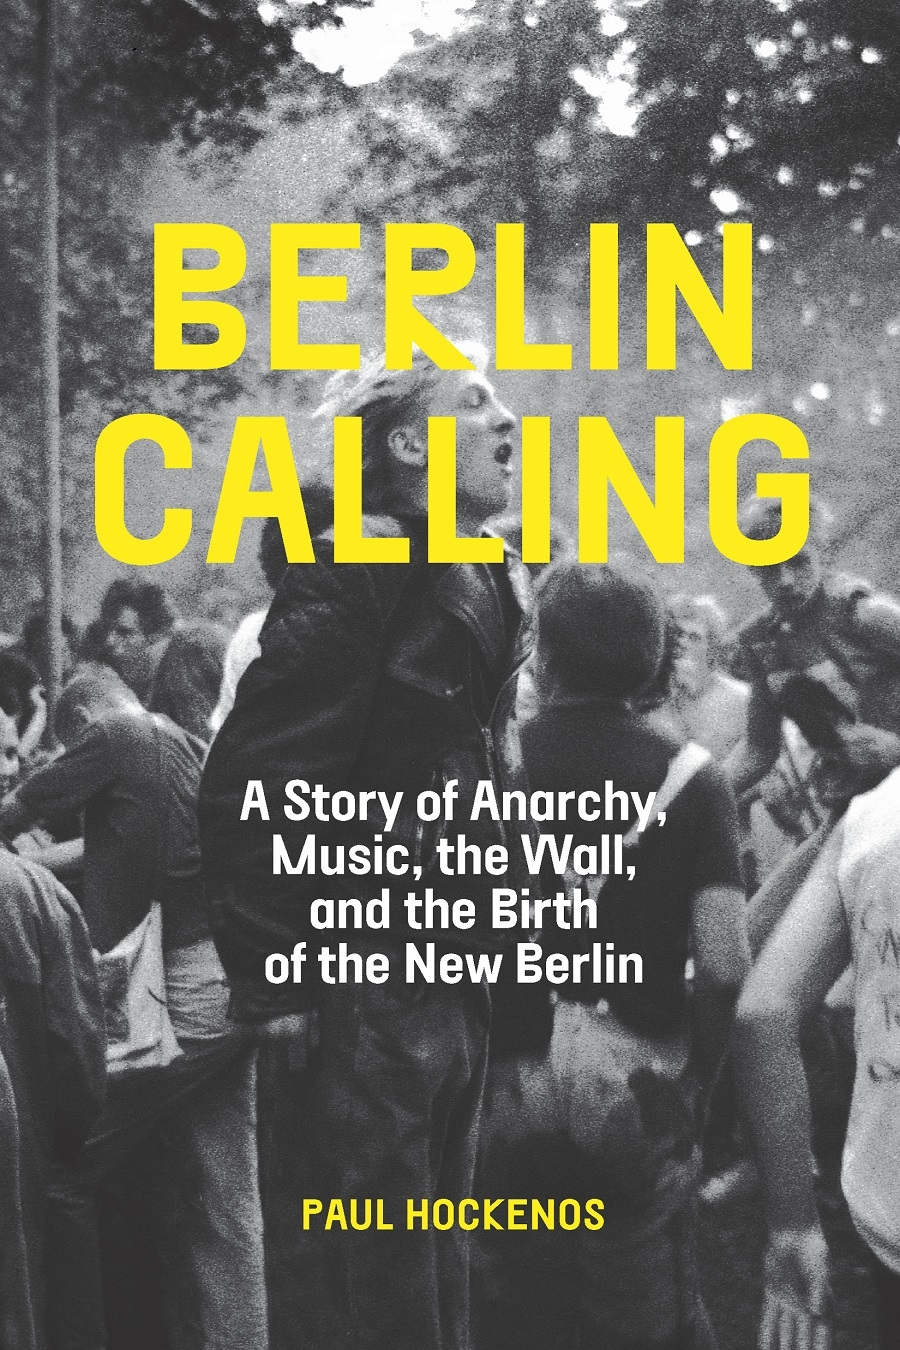 Berlin Calling – Event at Northshire Bookstore Aug. 11